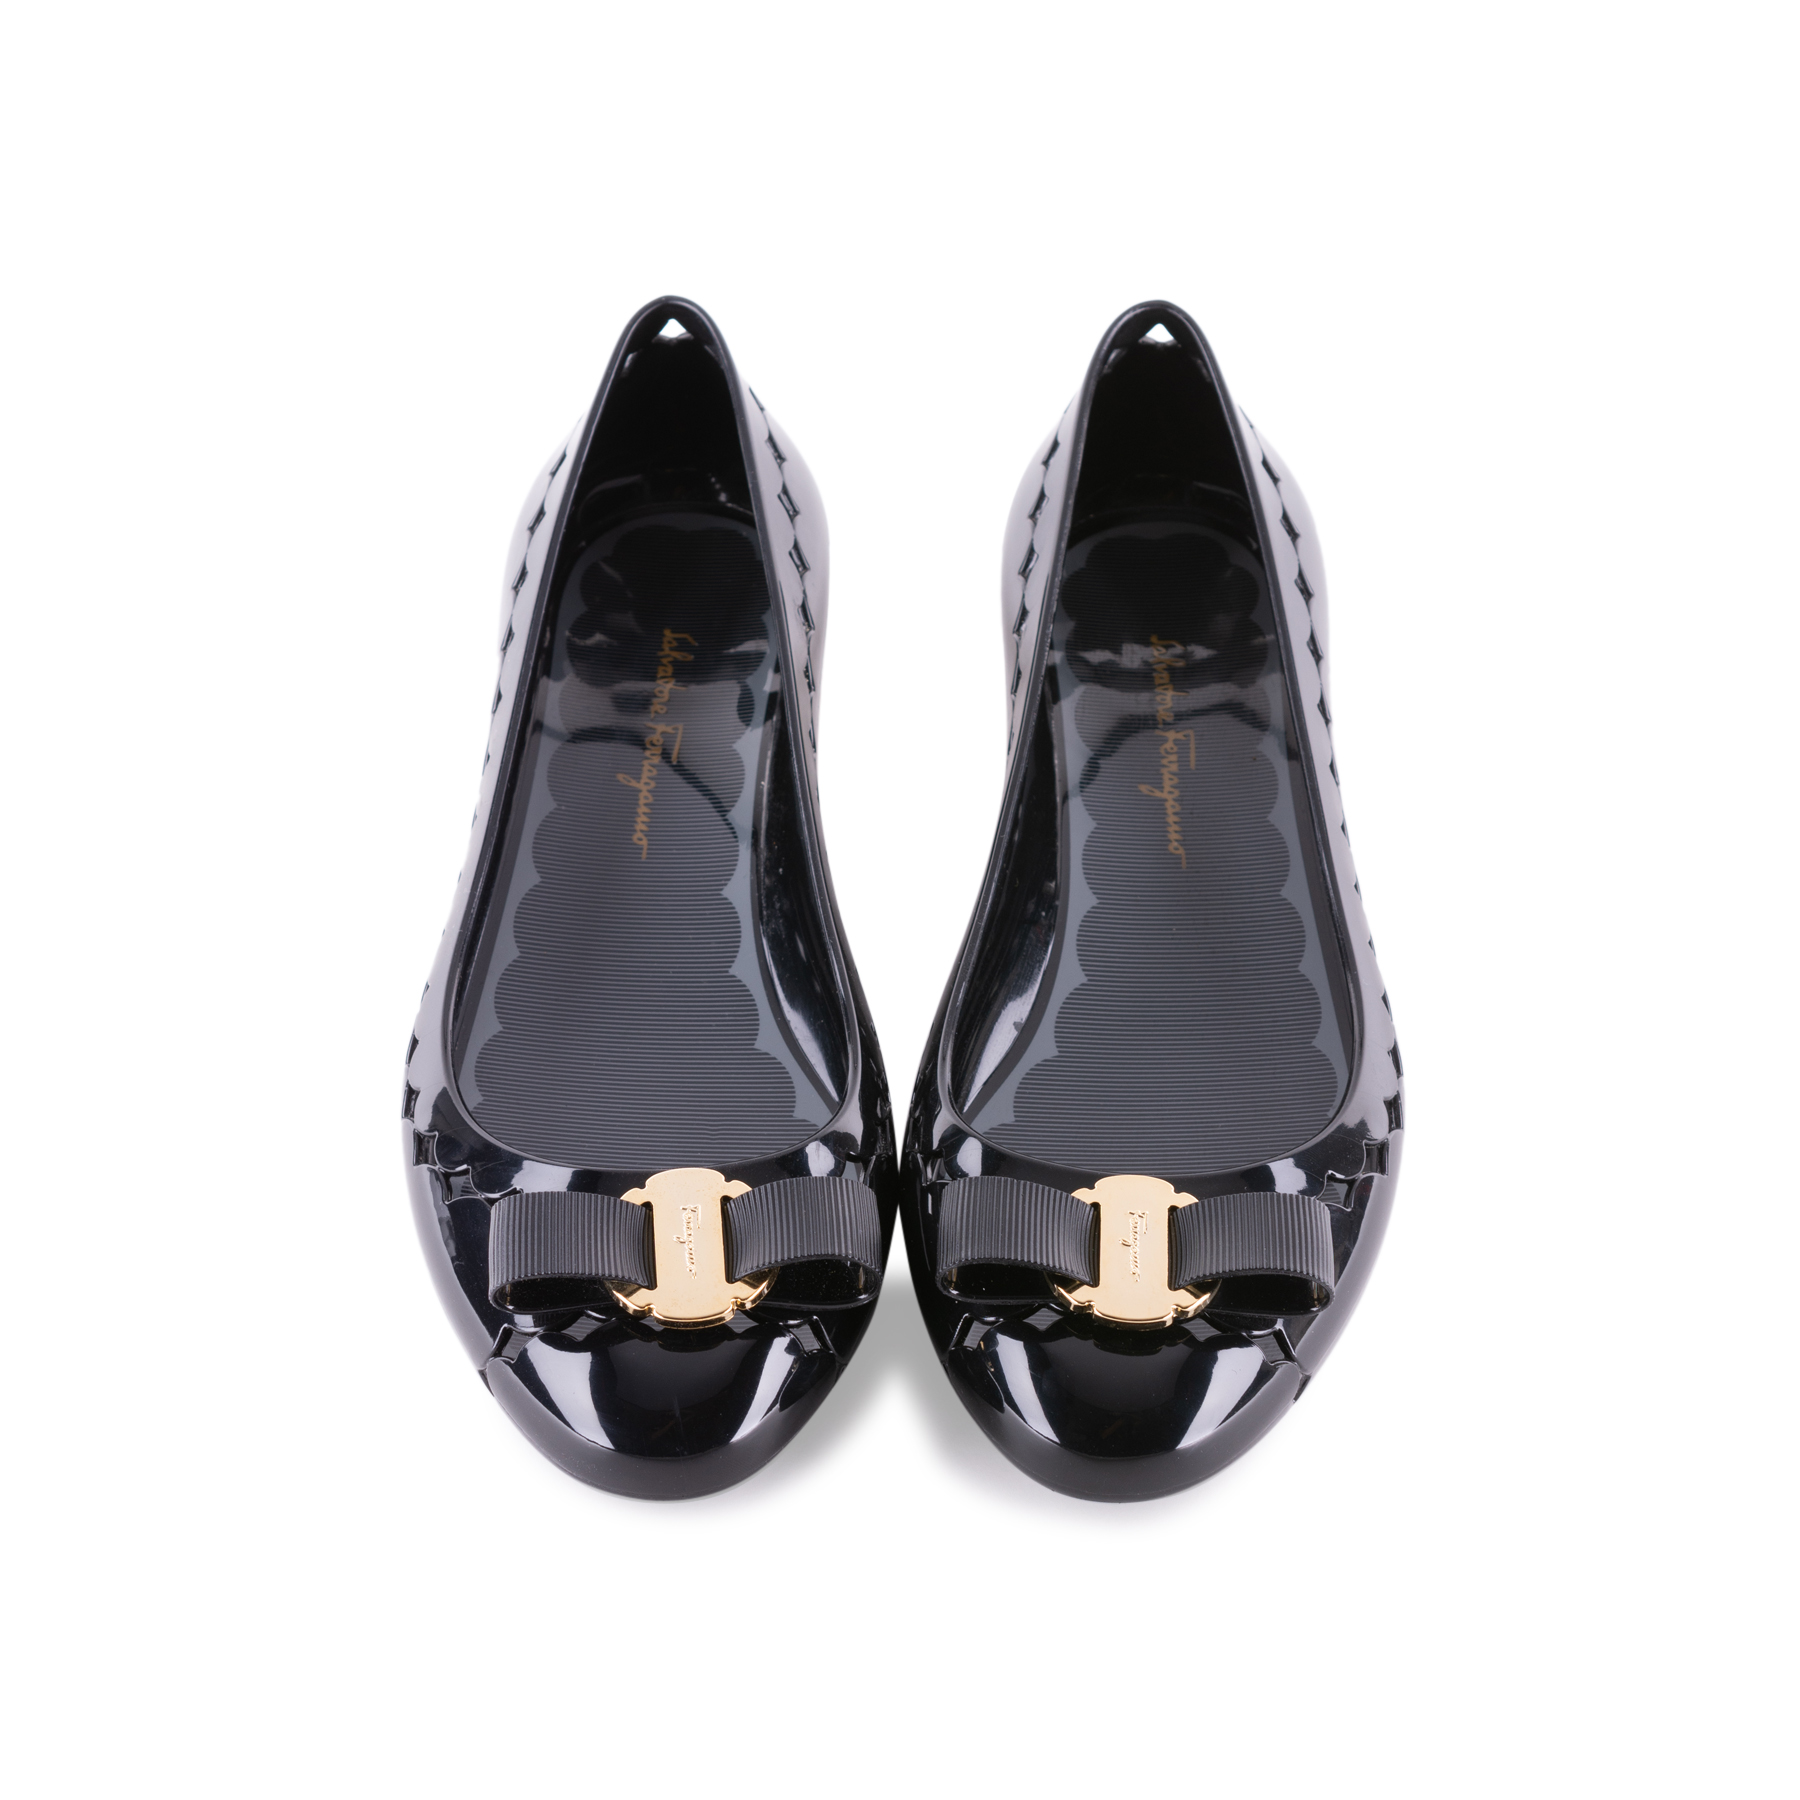 5cdc69fb0e Authentic Second Hand Salvatore Ferragamo Flower Heel Jelly Flats  (PSS-431-00008) - THE FIFTH COLLECTION